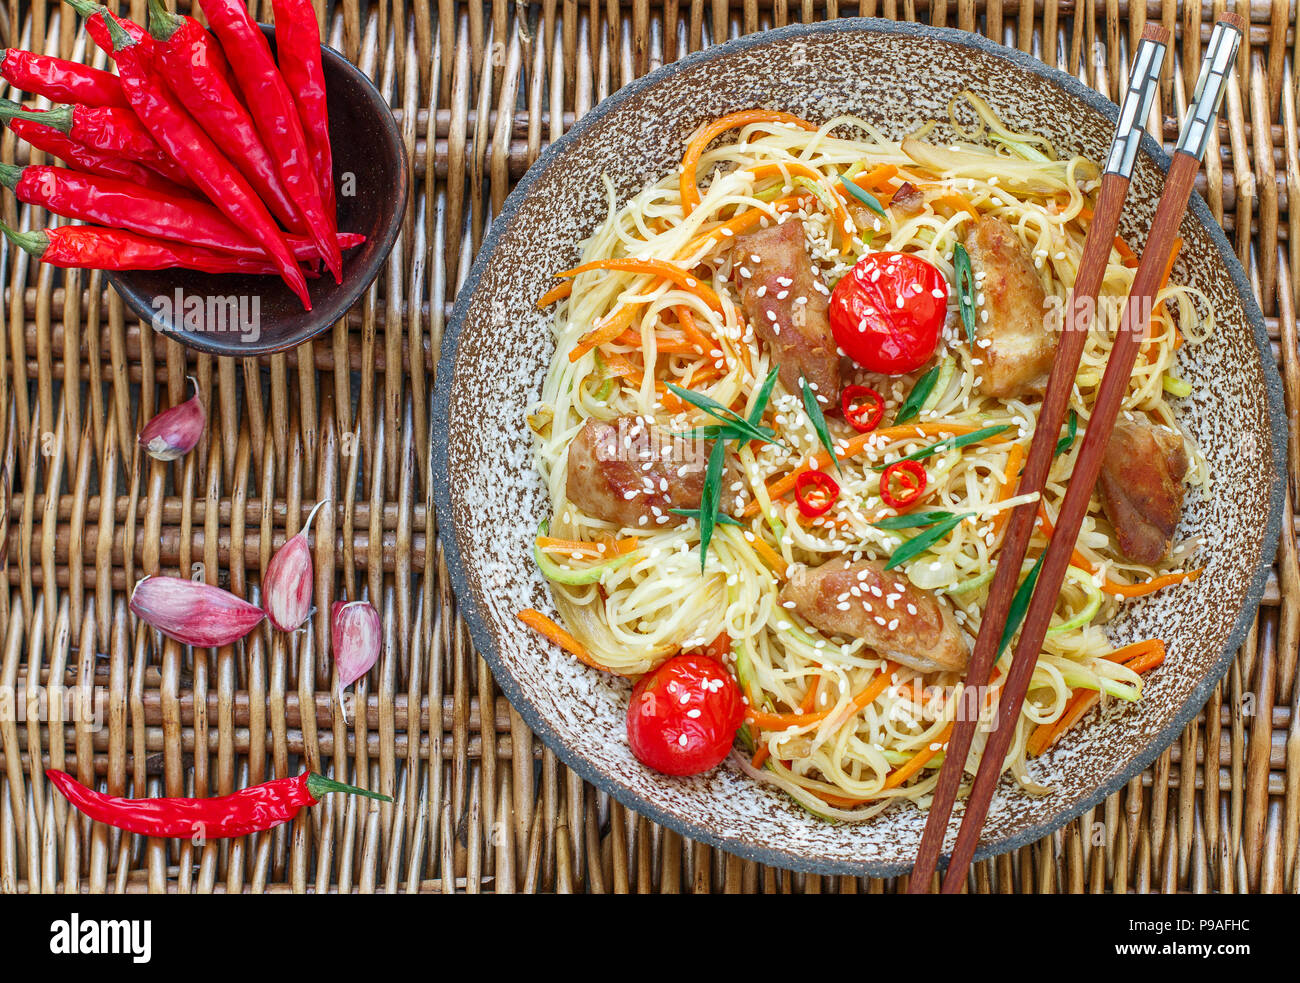 Stir fried noodle with chicken, vegetable (carrot, tomato, zucchini, garlic, red pepper, green onion), sesame seeds and soy sauce on clay plate. Asian - Stock Image